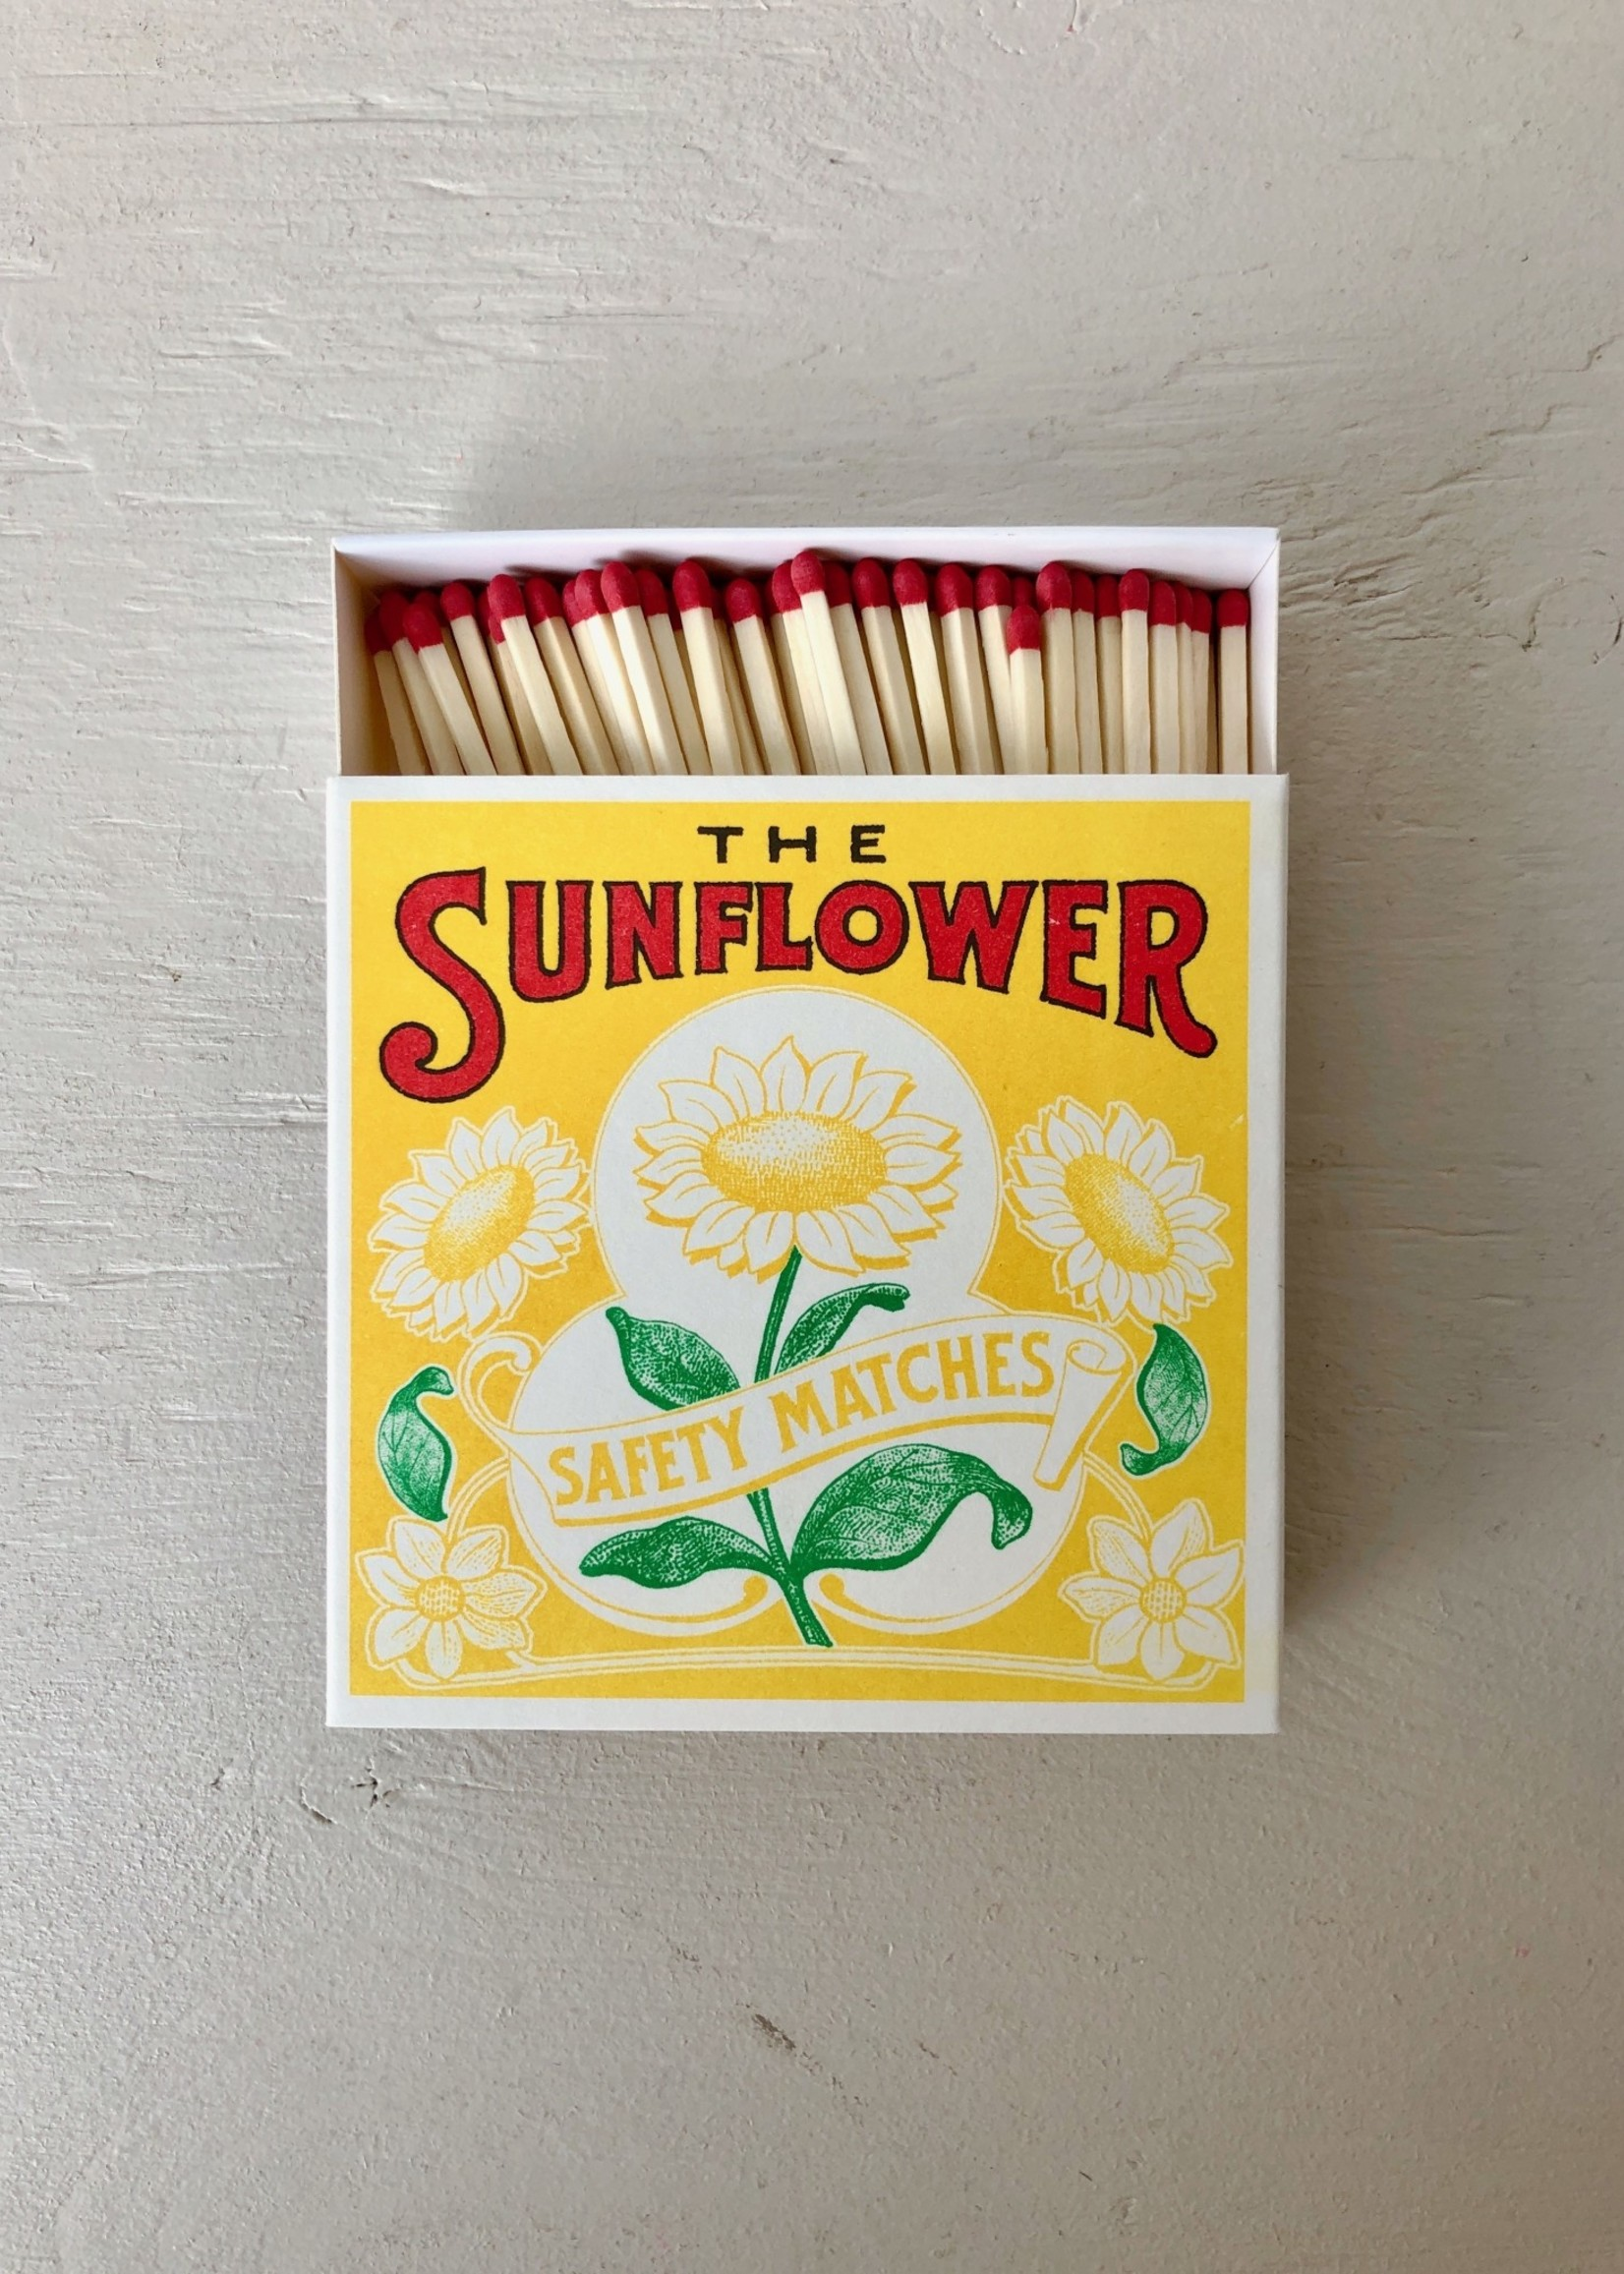 Archivist Box of Matches by Archivist